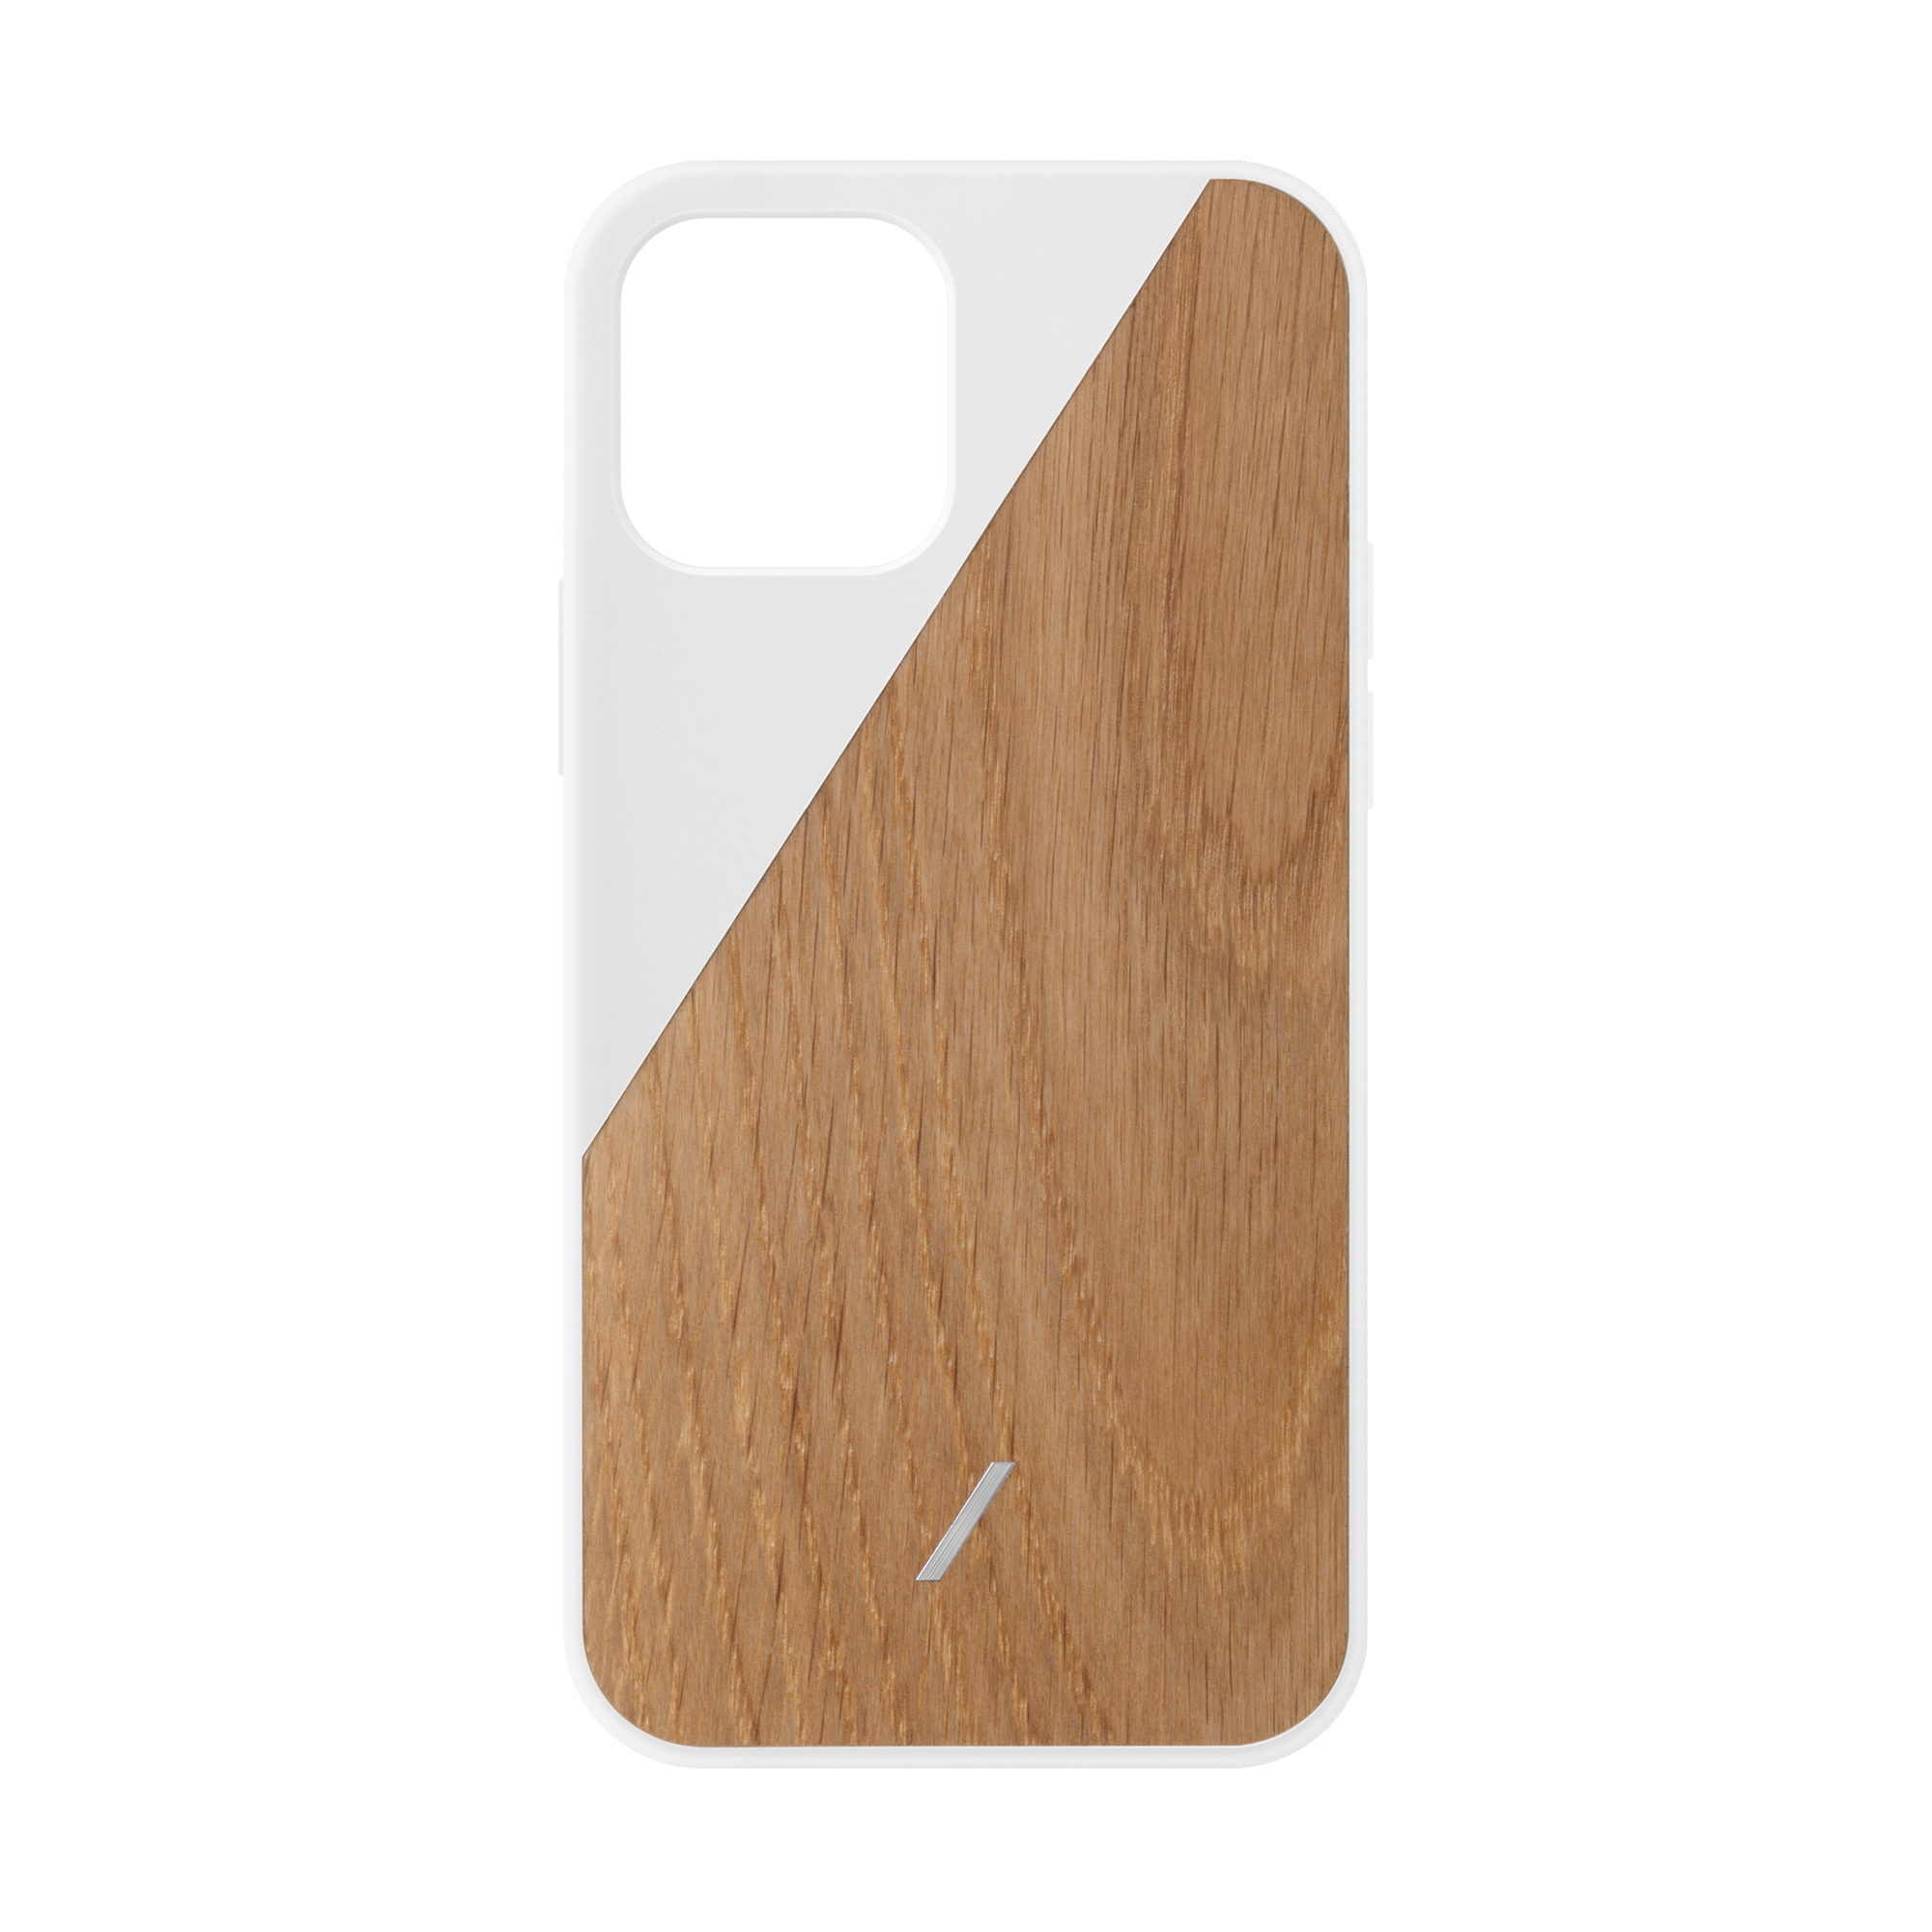 34316691079307,Clic Wooden (iPhone 12 Pro) - White